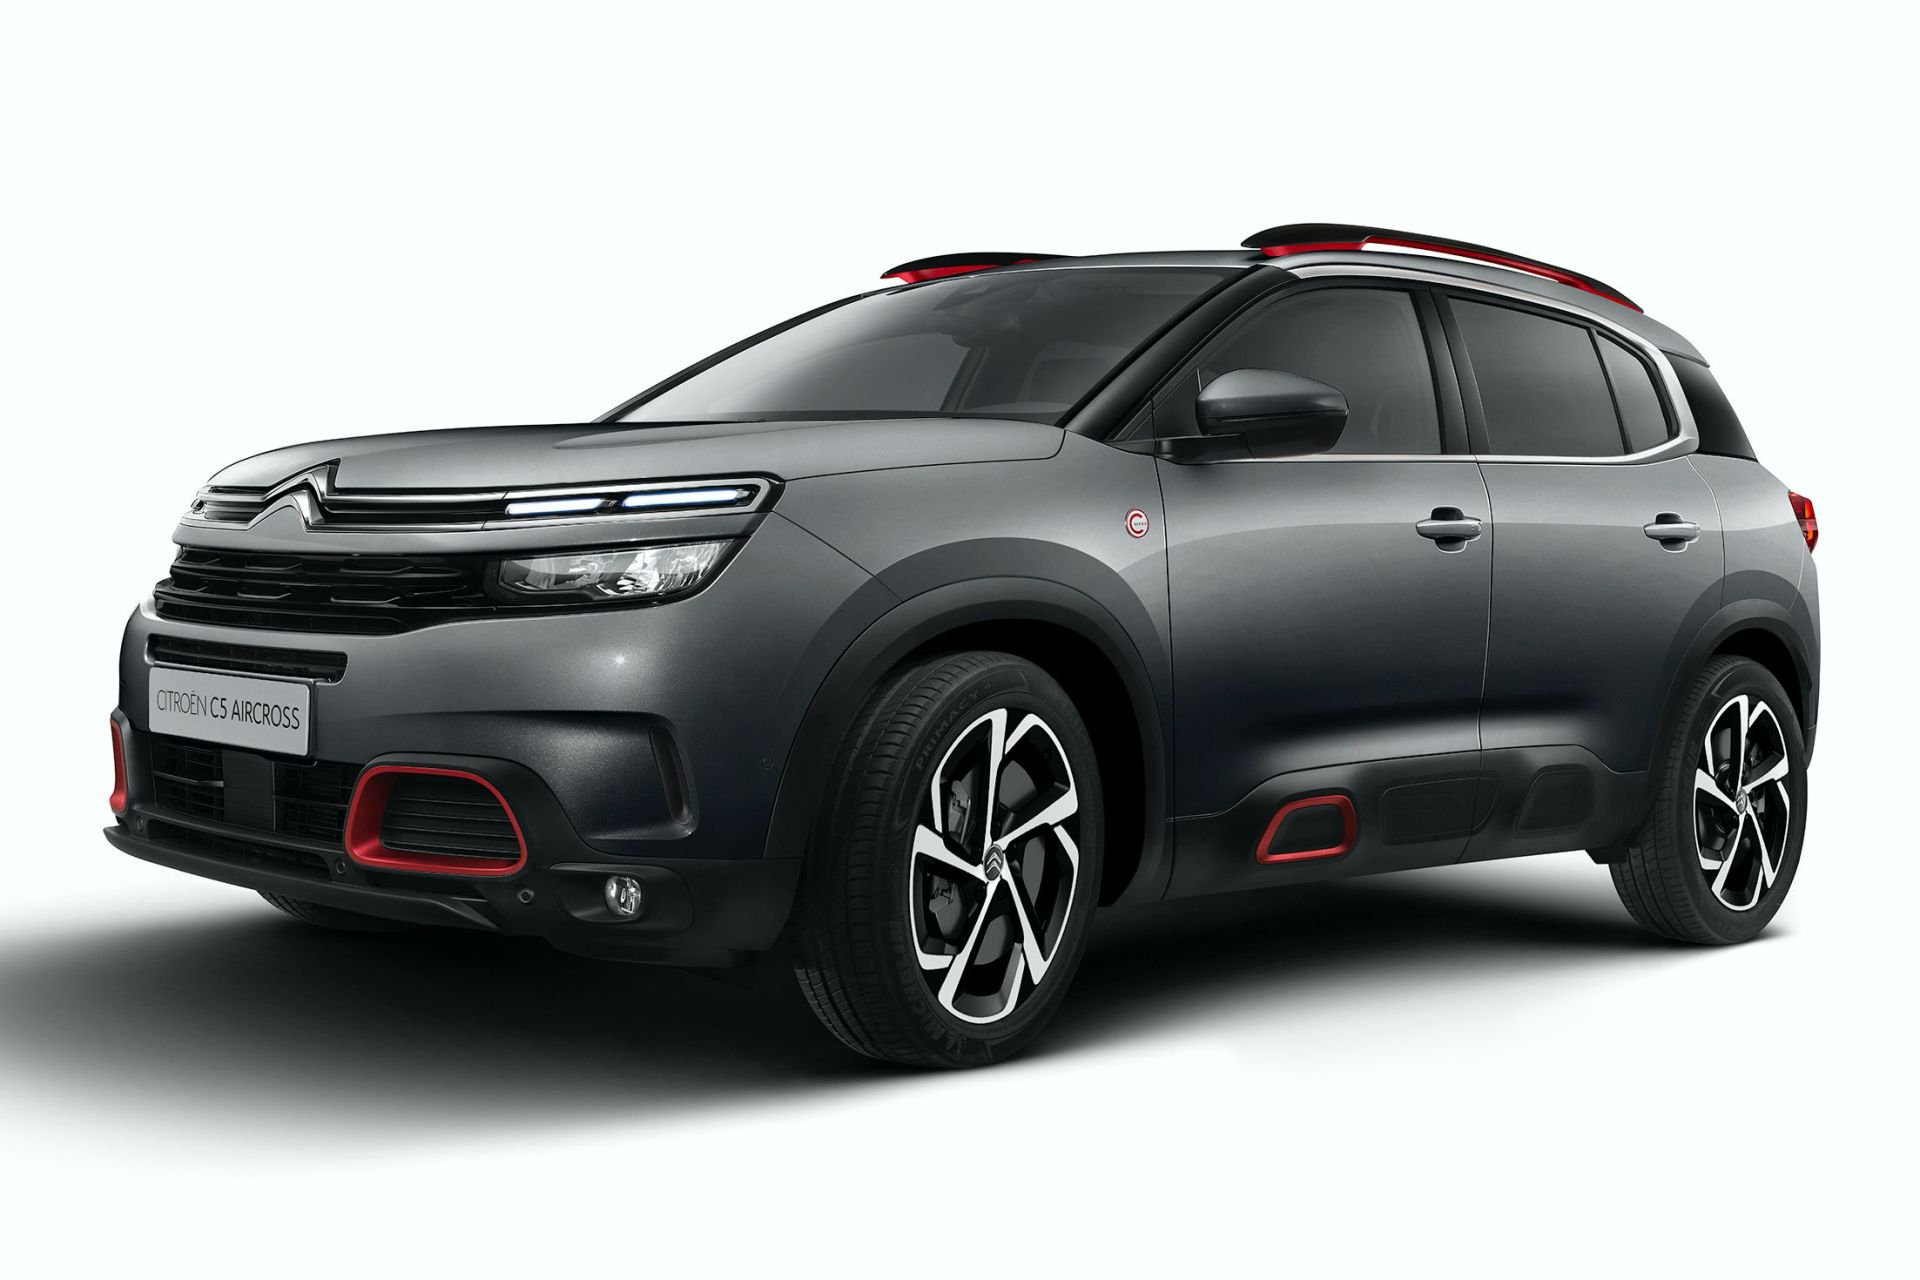 2020-Citroen-C5-Aircross-C-Series-6